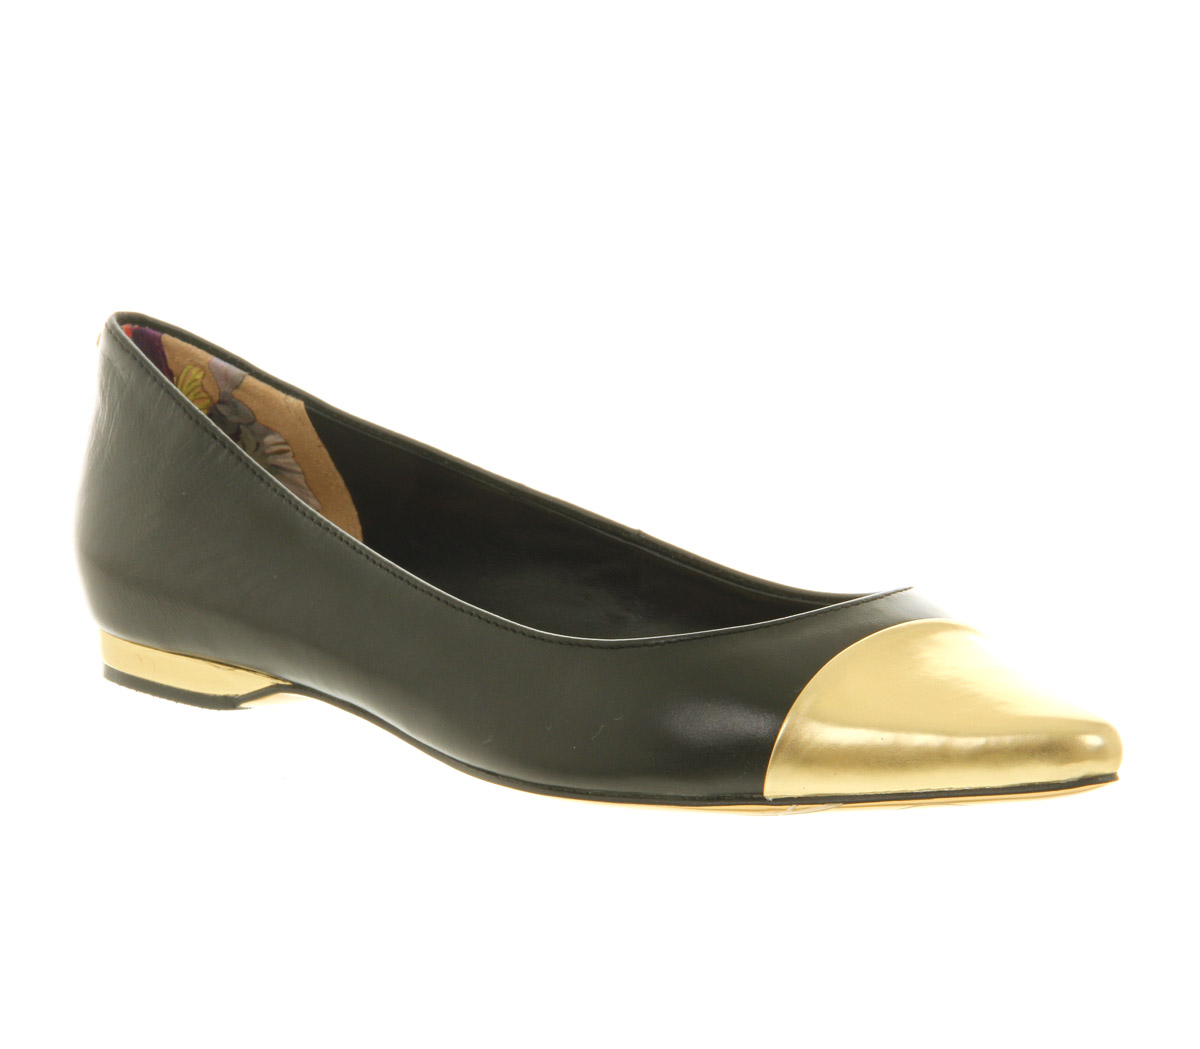 burlington flats black dating site Shop our selection of women's shoes at burlington a range of styles from top brands, at up to 65% off other retailers' prices free shipping available.